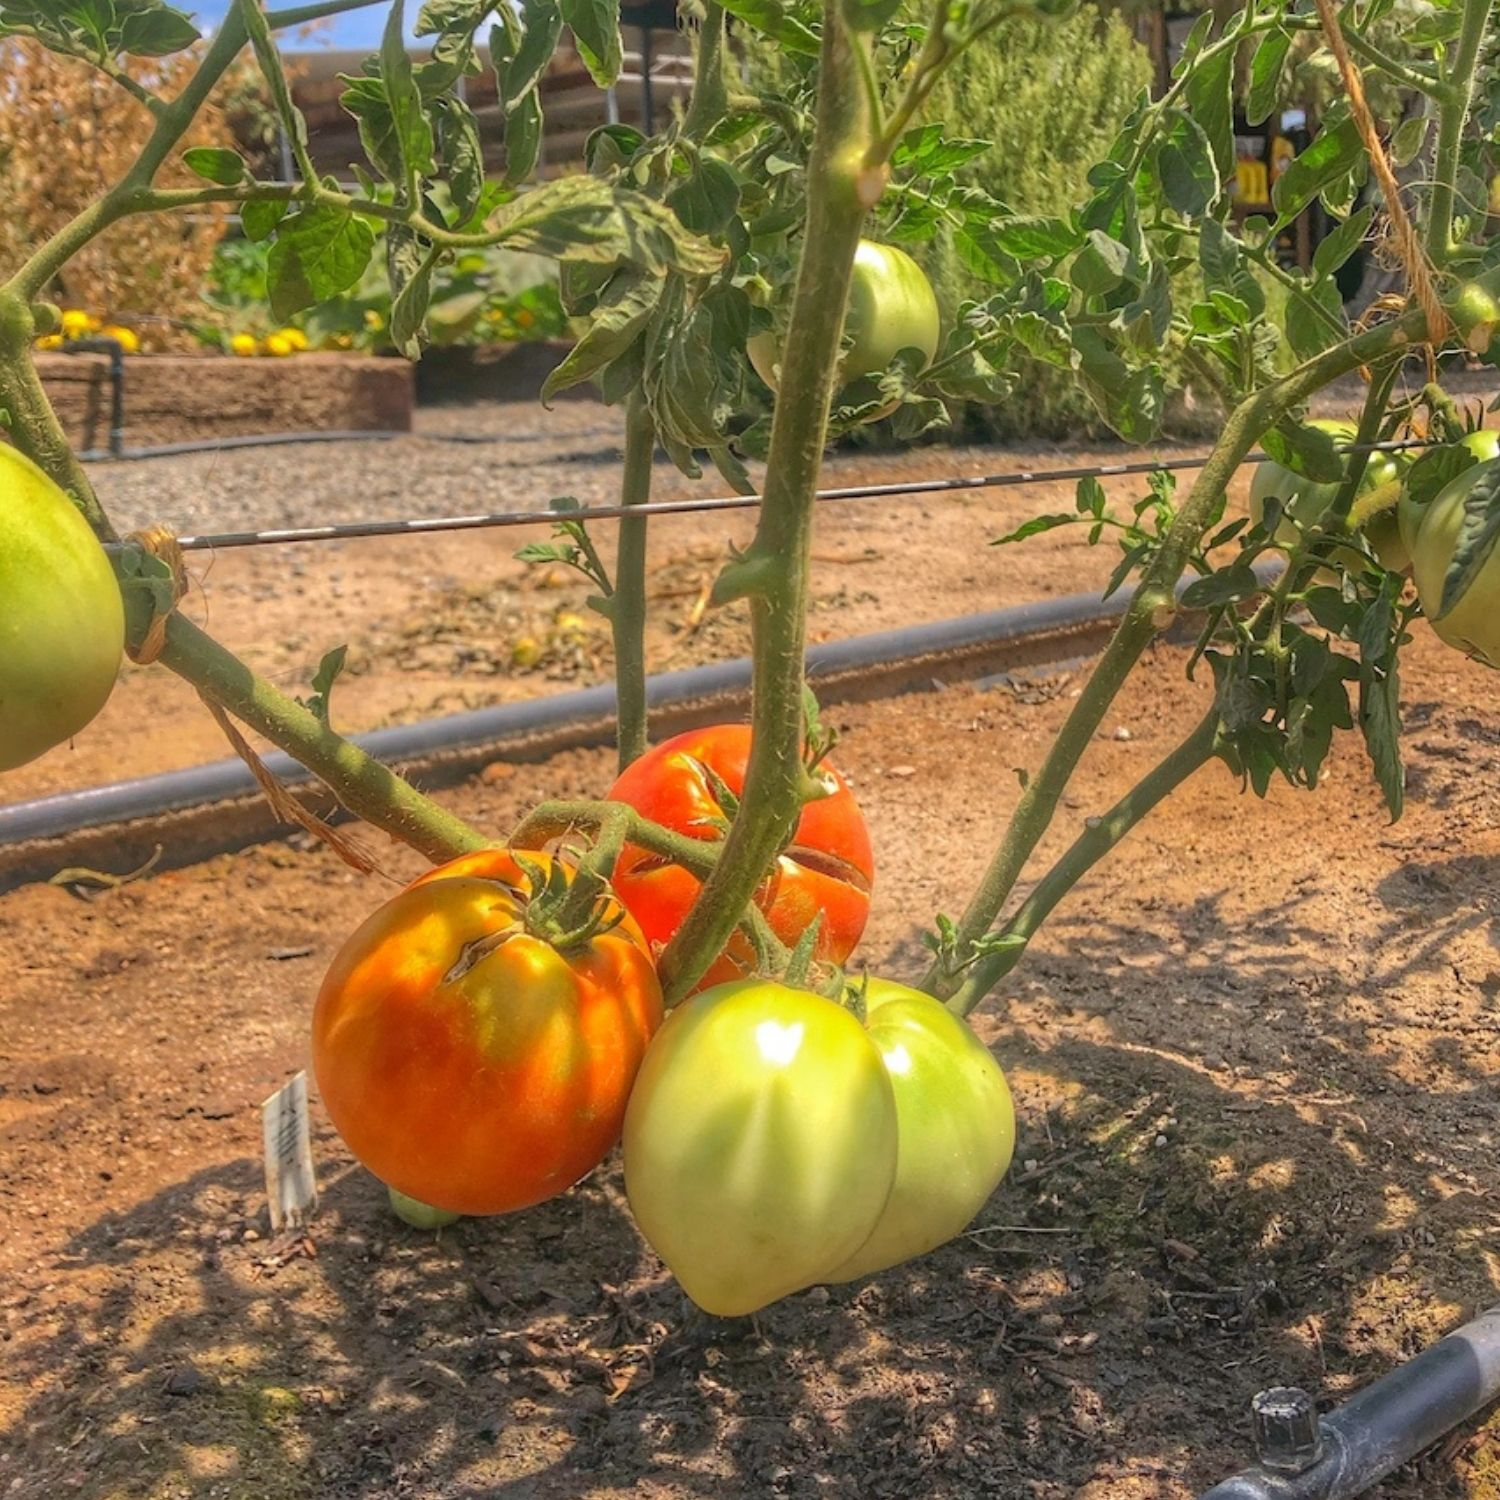 Tomatoes growing in the garden